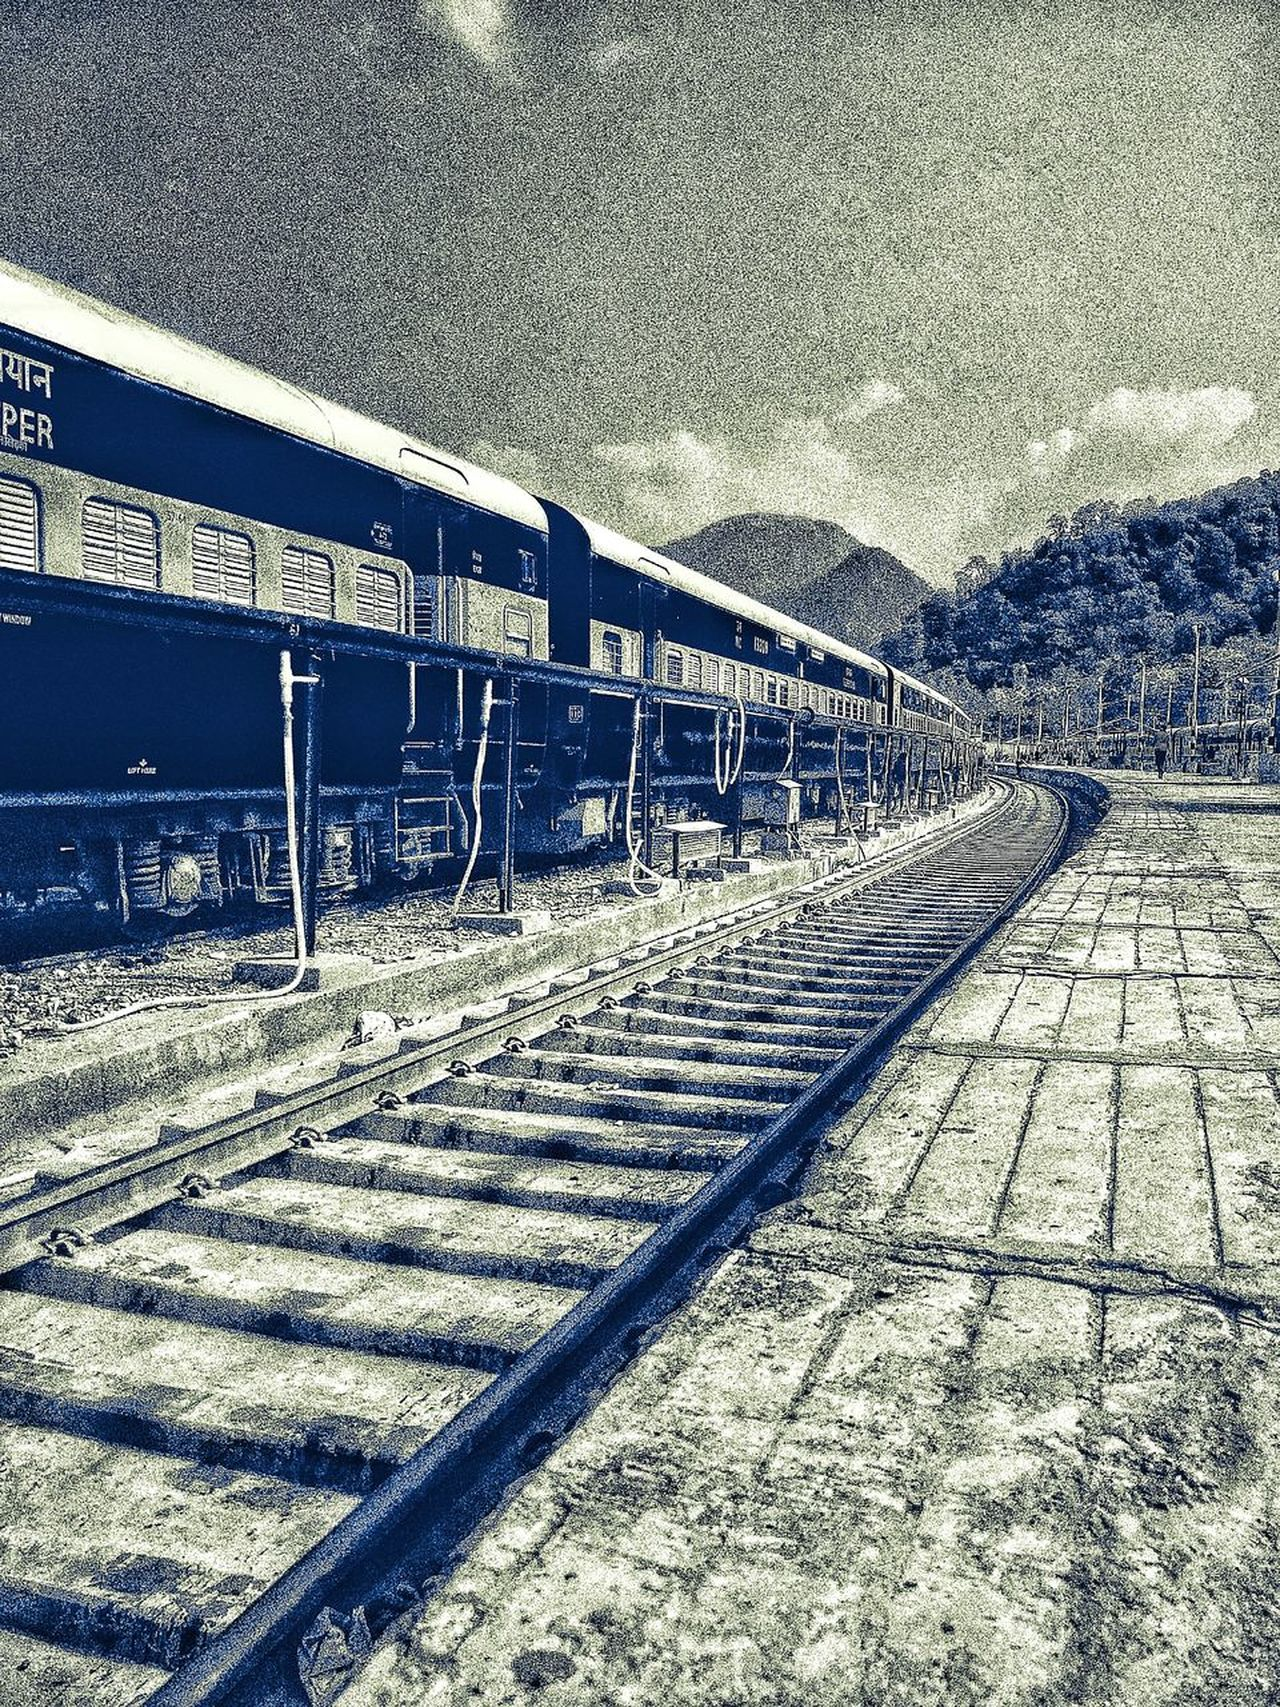 Pattern Backgrounds Textured  Day No People Outdoors EyeEm Gallery India Uttrakhanddairies Uttrakhand Train Station Platform Train Station Edited Snapseed Eyeemphotography Oneplus2 Oneplusphotography Train - Vehicle Train Tracks Transportation Hilly Area Grainy Effect Grainy Images Grainy Texture Indian Railways